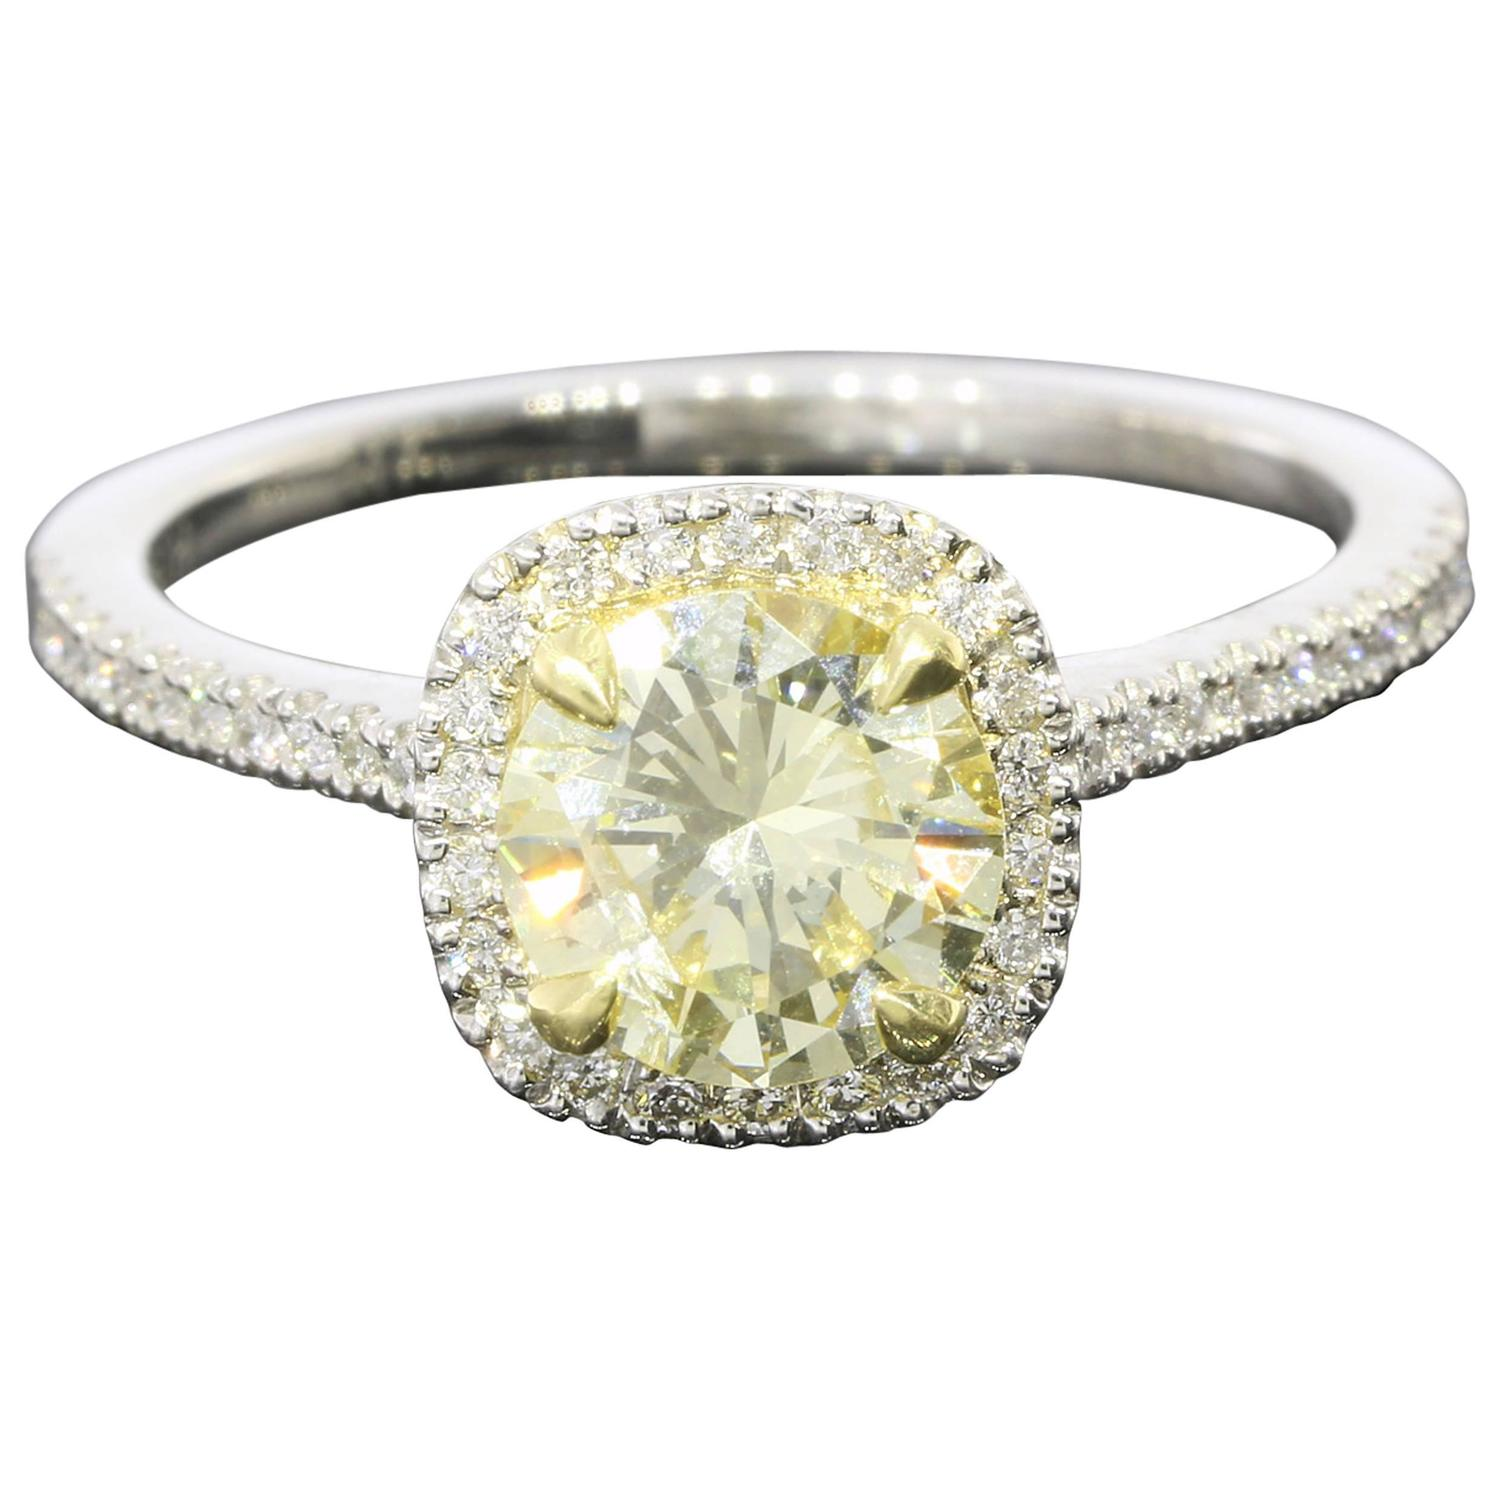 Fancy Light Yellow Canary Diamond gold platinum Halo Ring For Sale at 1stdibs